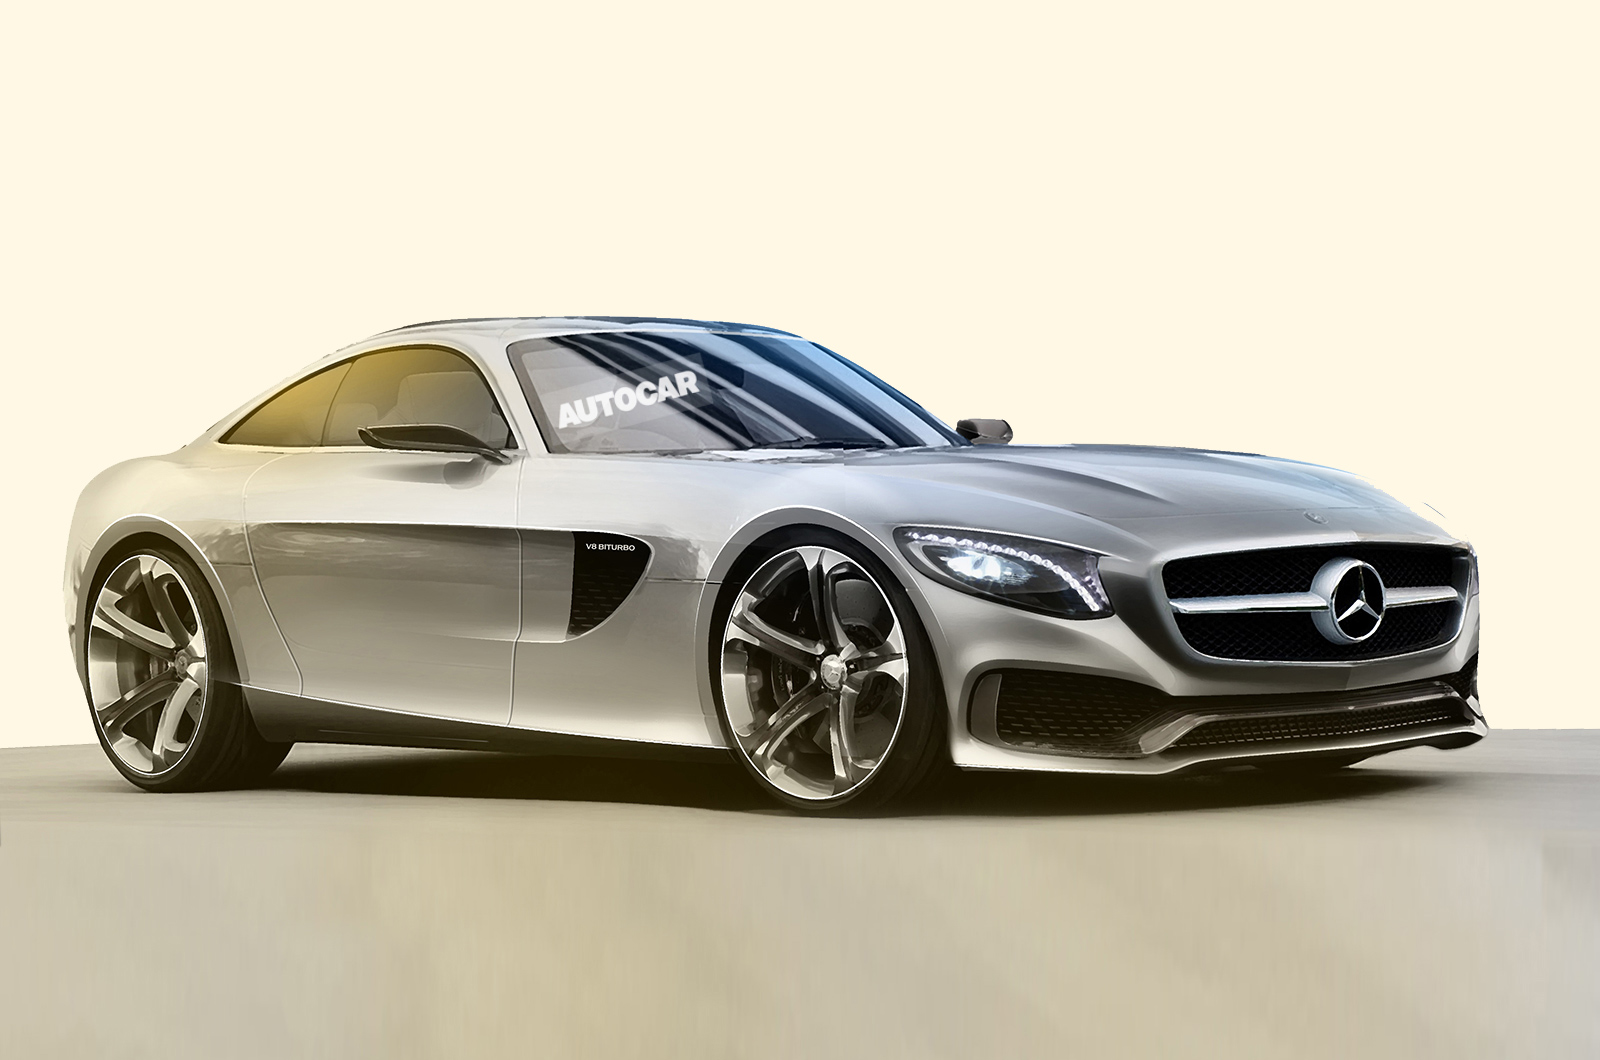 Beautiful A Preview Of The Mercedes AMG GT With The Companyu0027s Designers | Autocar